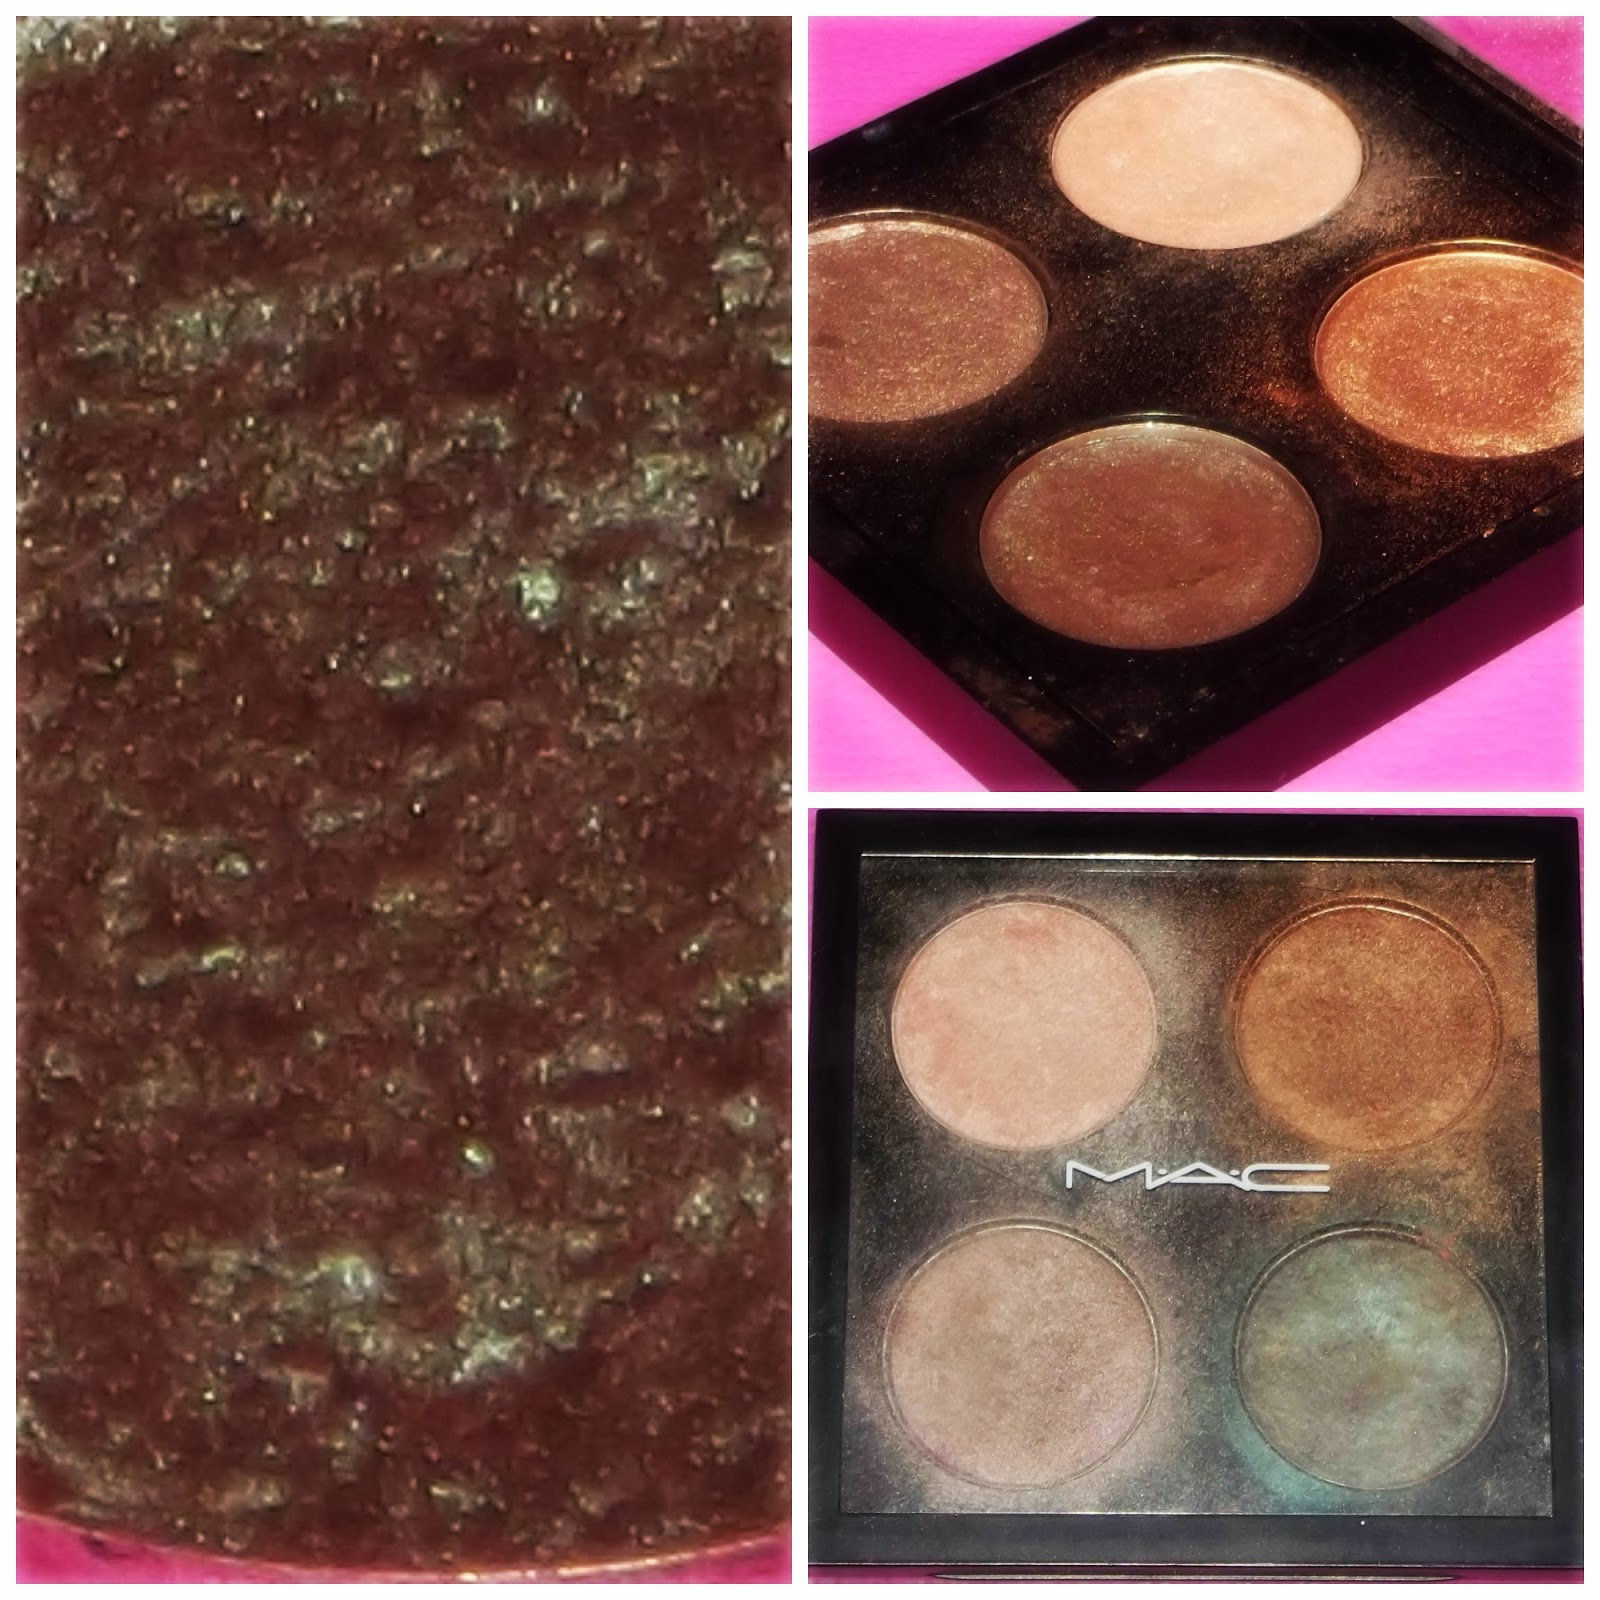 neala olivia mac club eyeshadow dupes